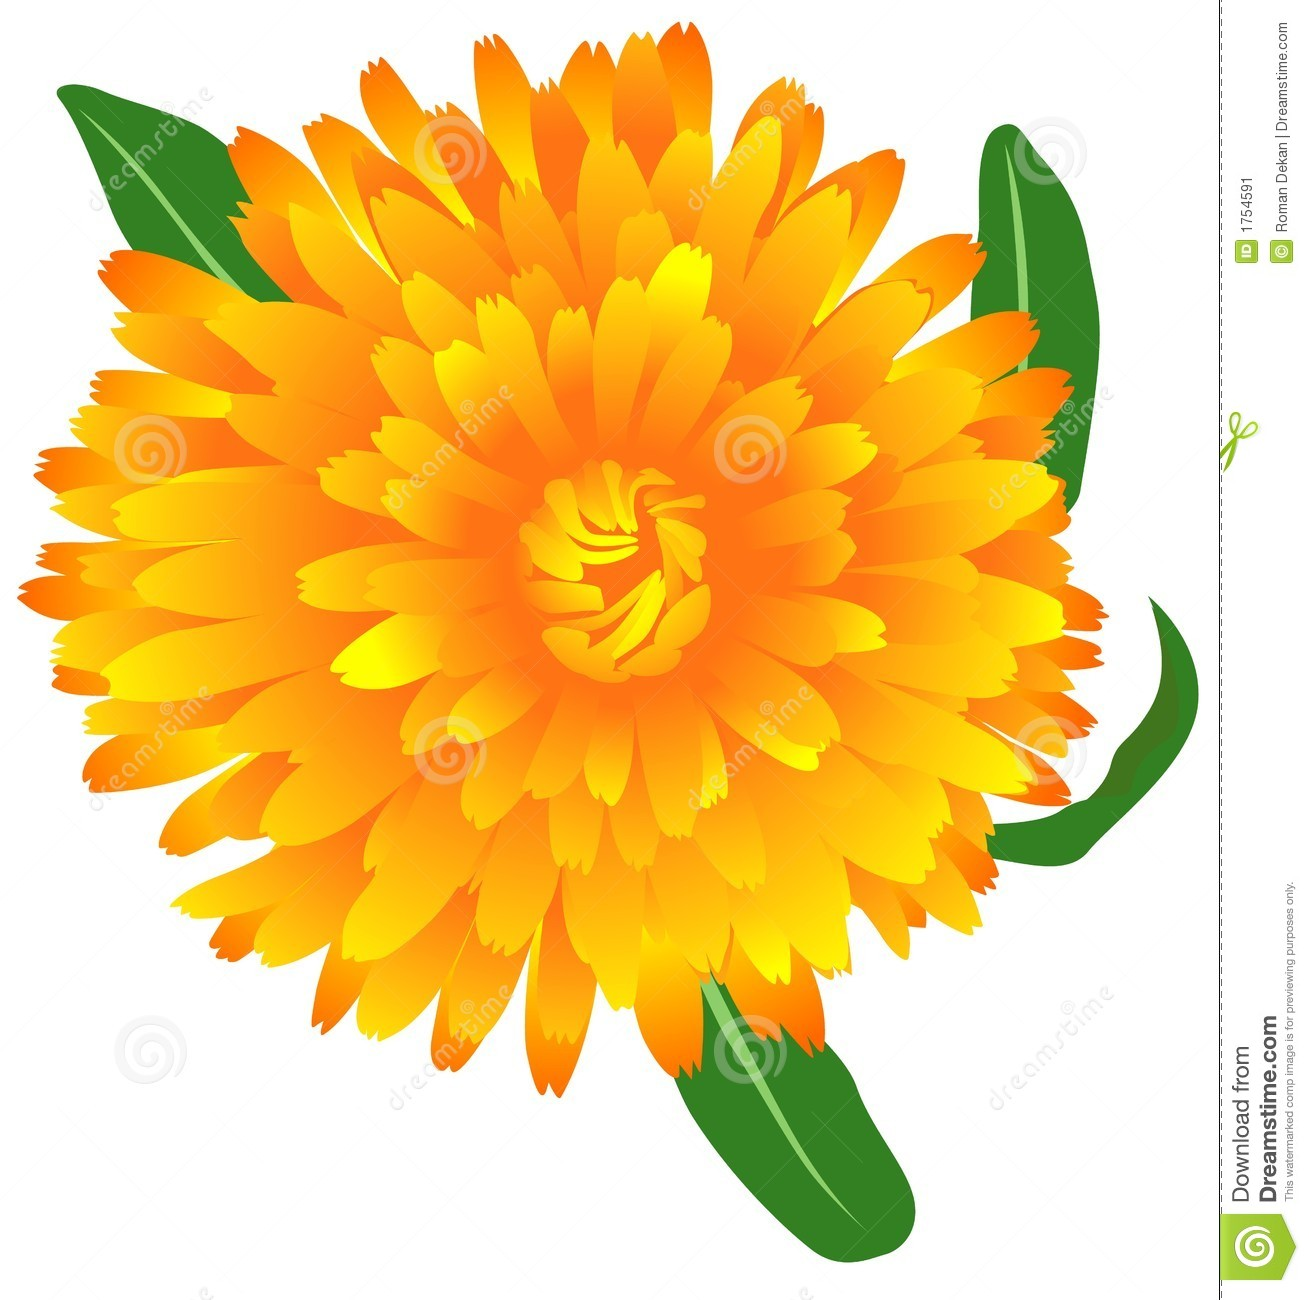 Marigold clipart #15, Download drawings